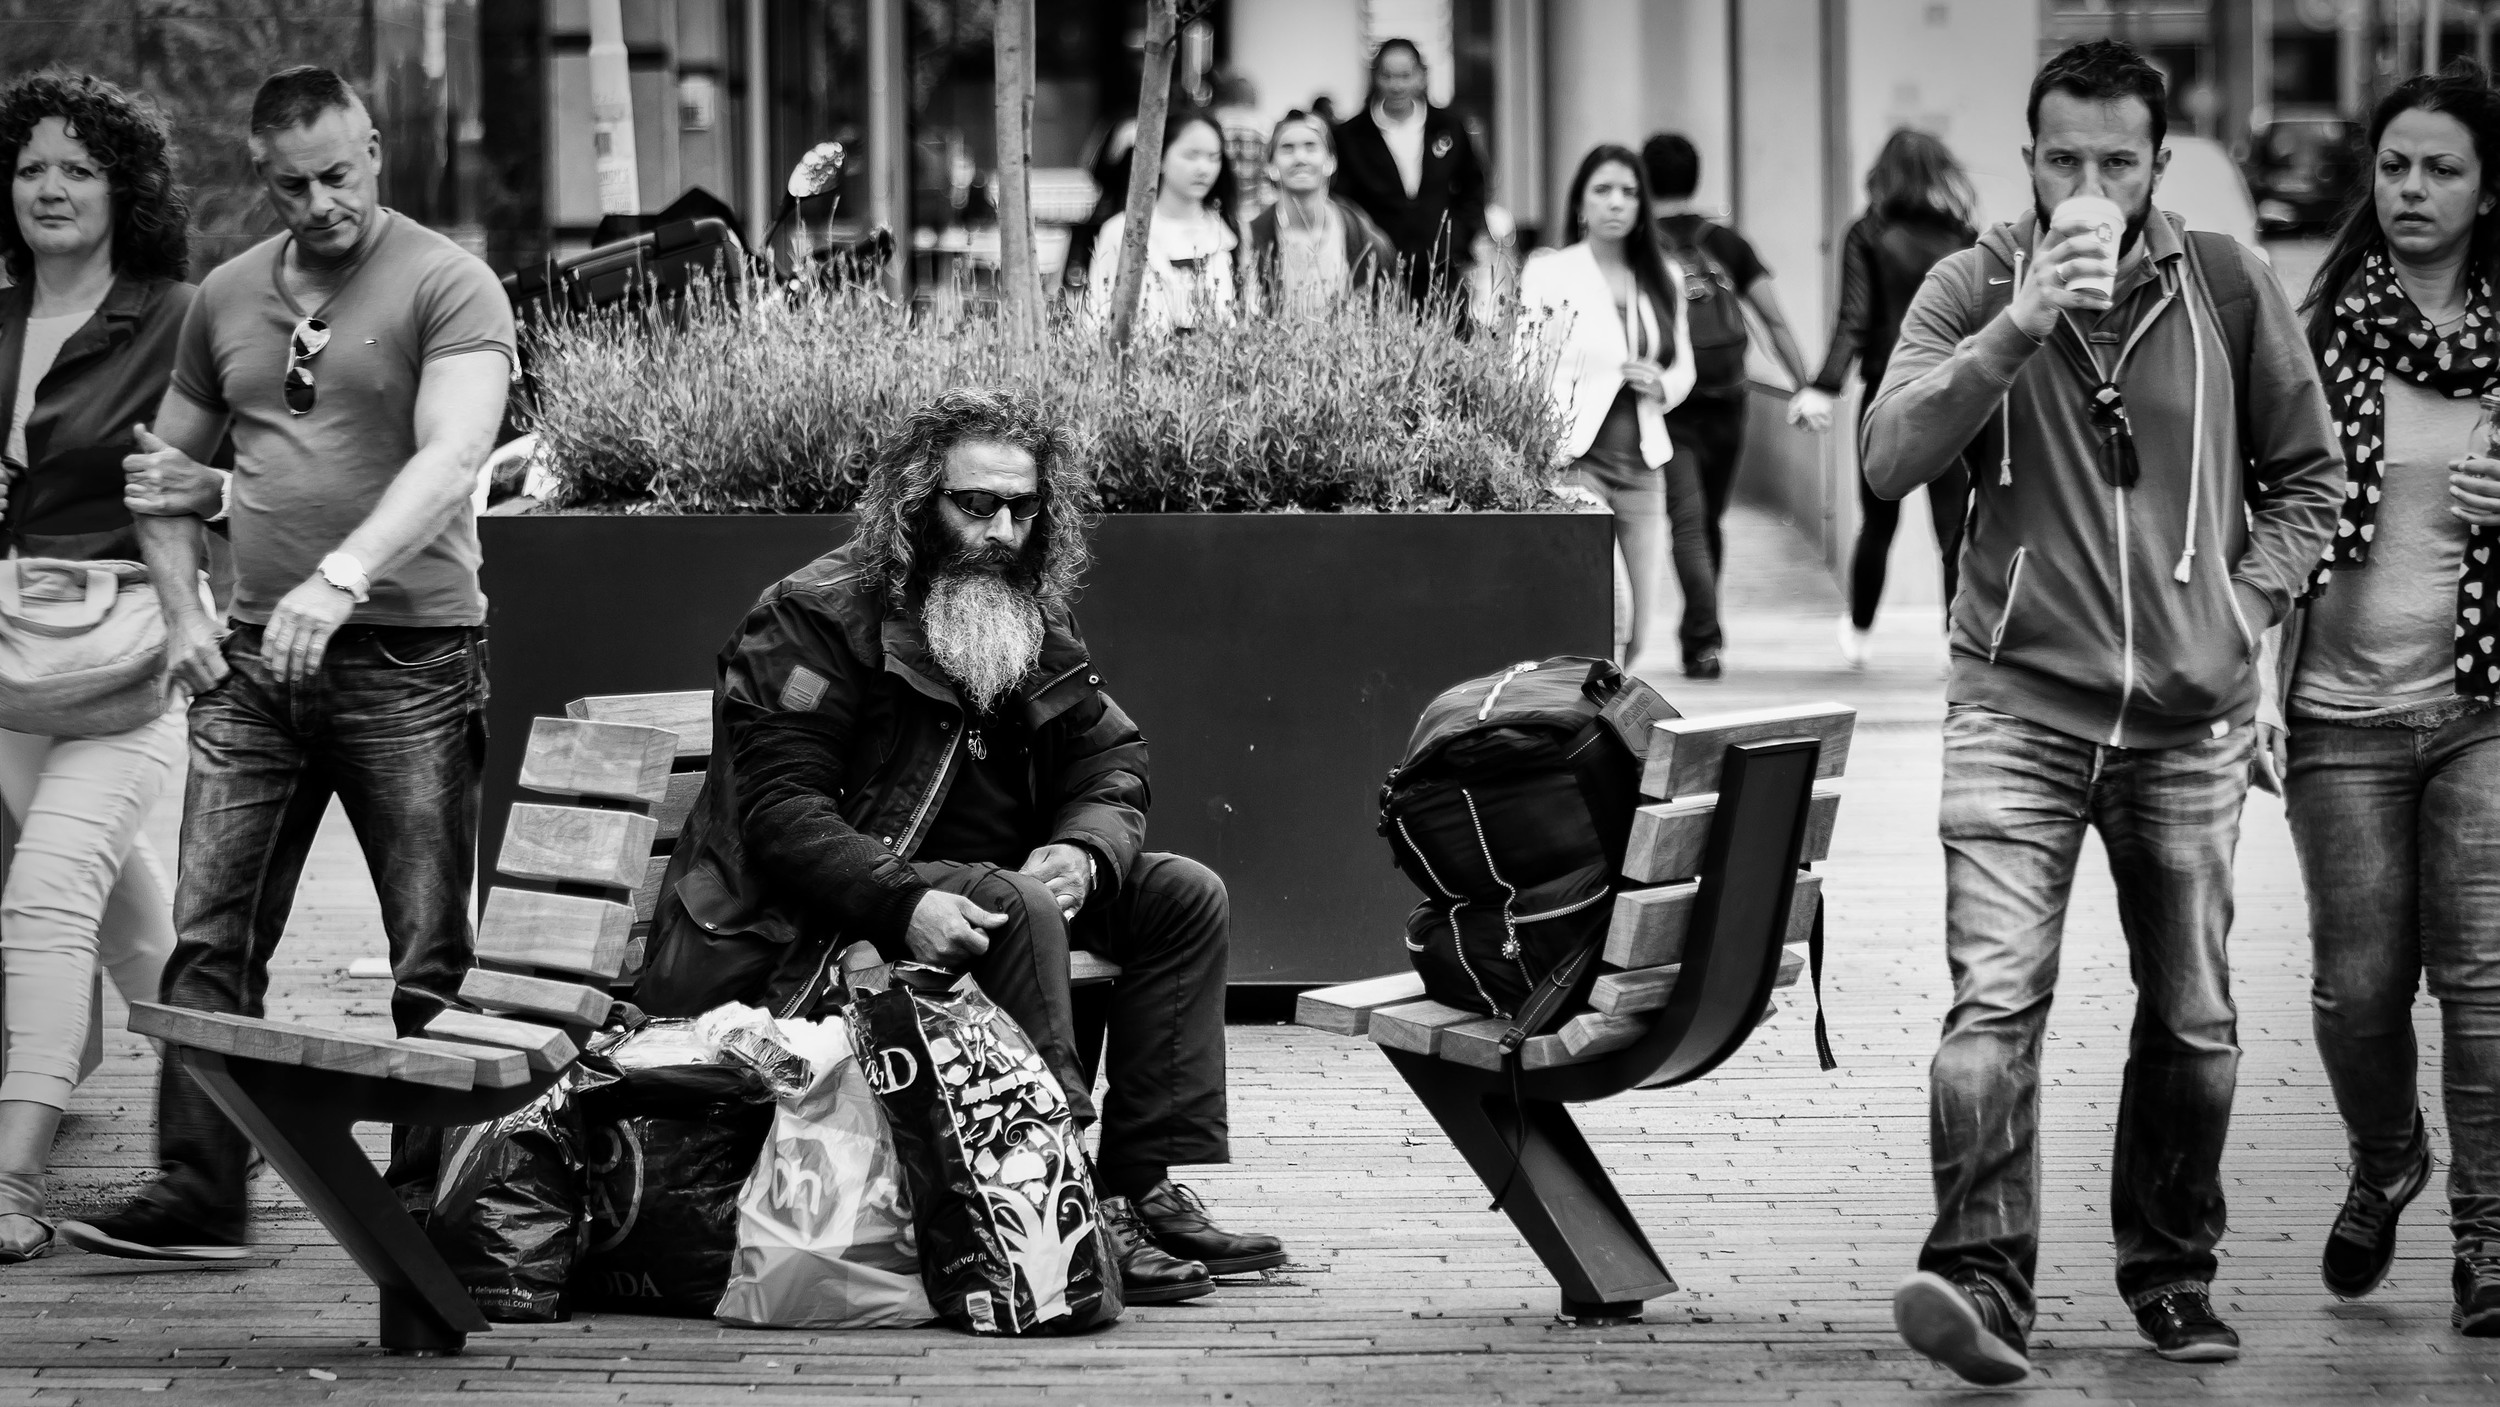 Unfortunate, disabled or society's rejected people  (click to enlarge) A homeless man in Rotterdam. Ignored and rejected by society. Not noticed anymore... Notice the expression on the face from the guy on the left while looking at him.